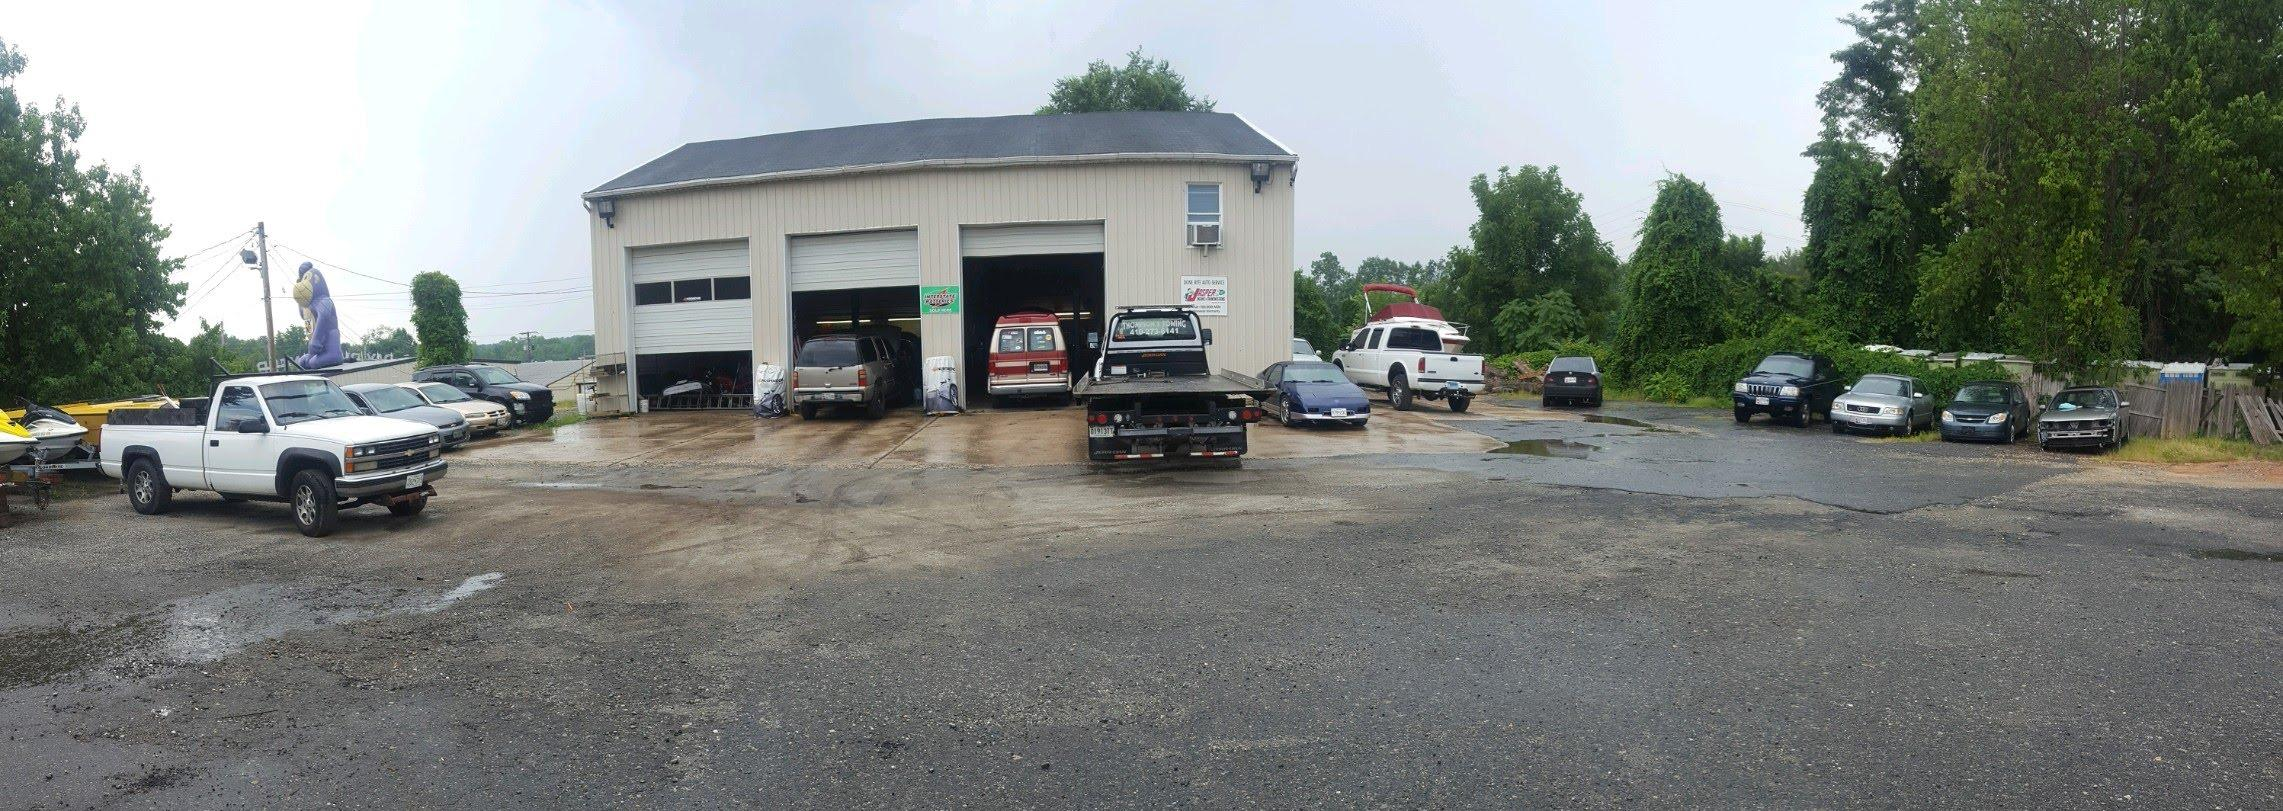 Done Rite Auto & Towing image 8